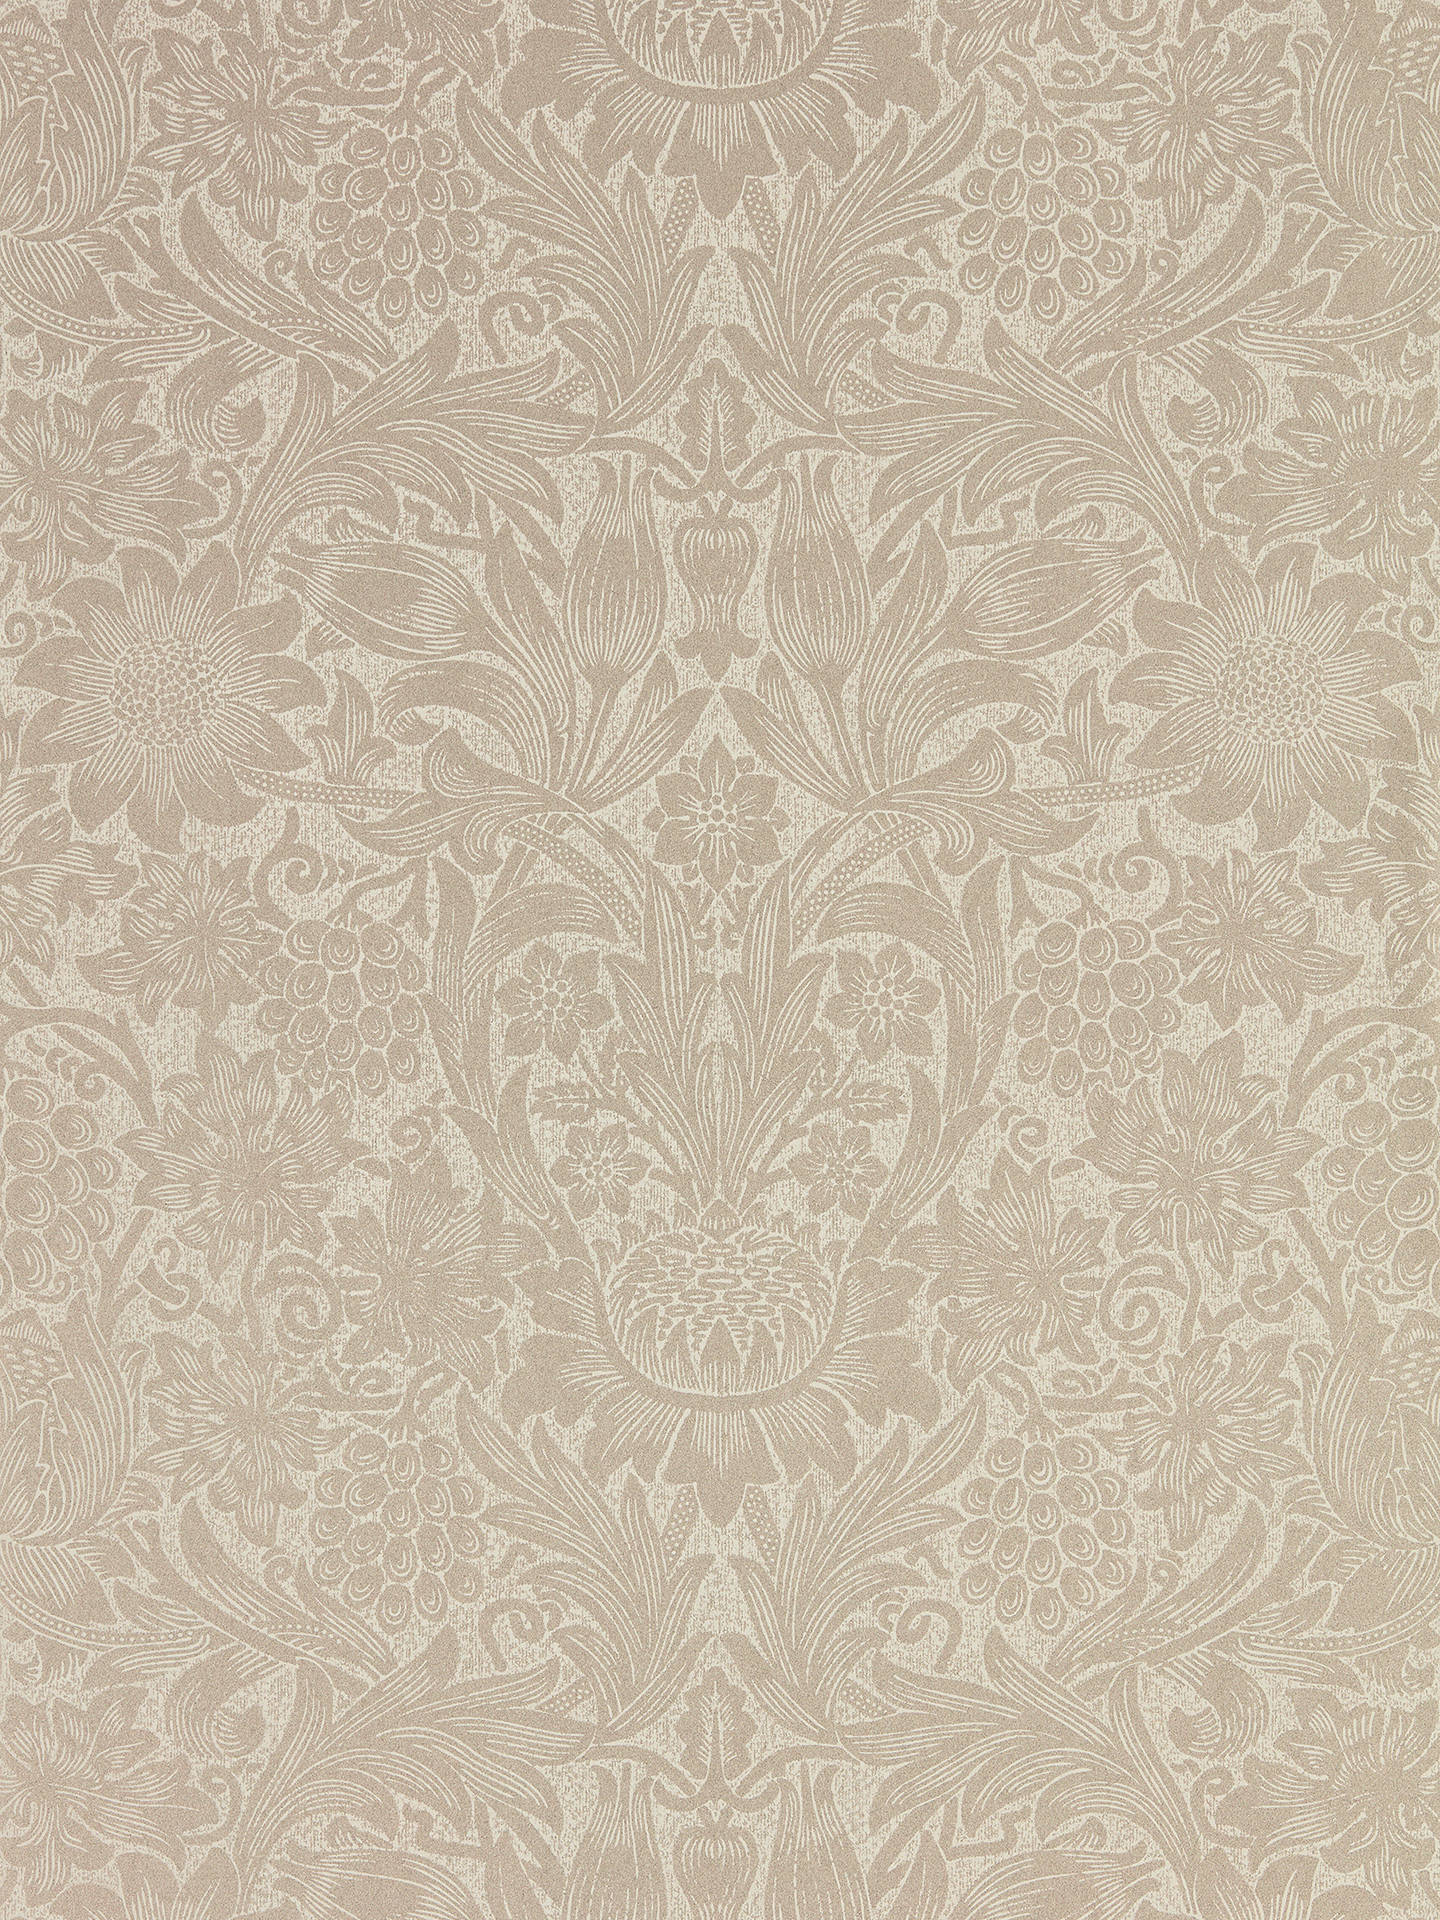 Buy Morris & Co. Pure Sunflower Wallpaper, Pearl / Ivory DMPU216048 Online at johnlewis.com